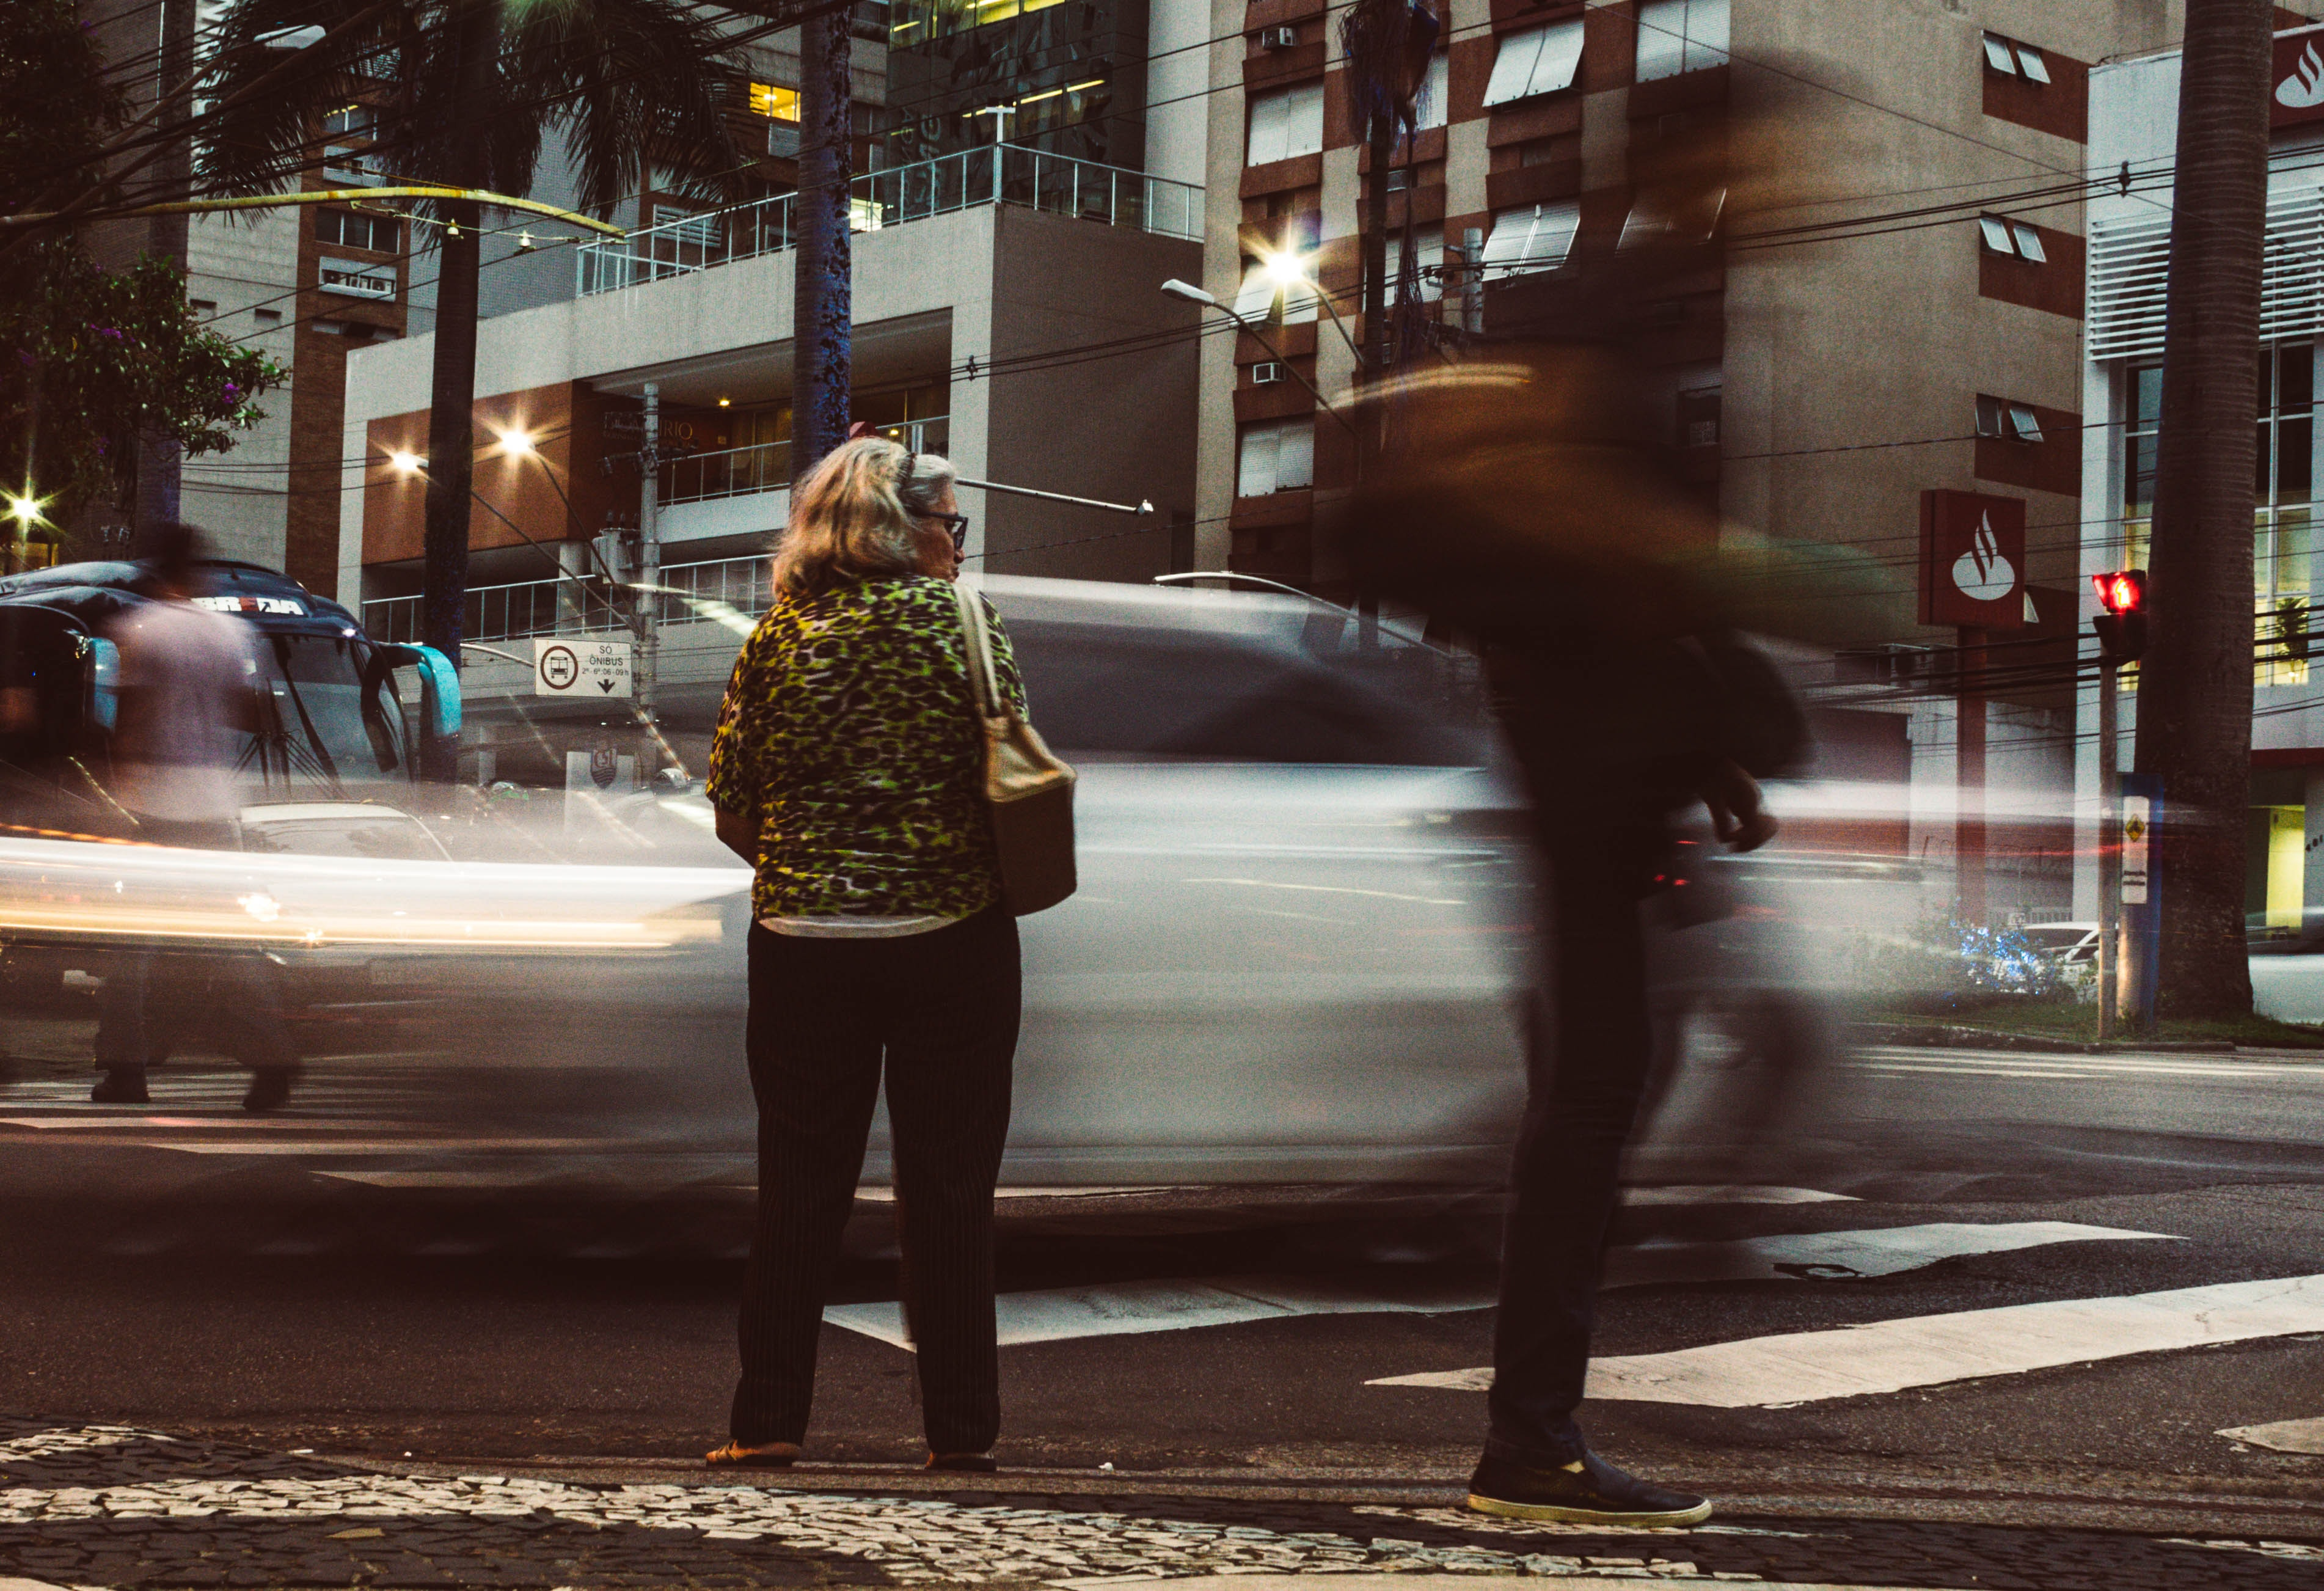 Time-lapse Photography Standing on Road, Blur, People, Urban scene, Urban area, HQ Photo